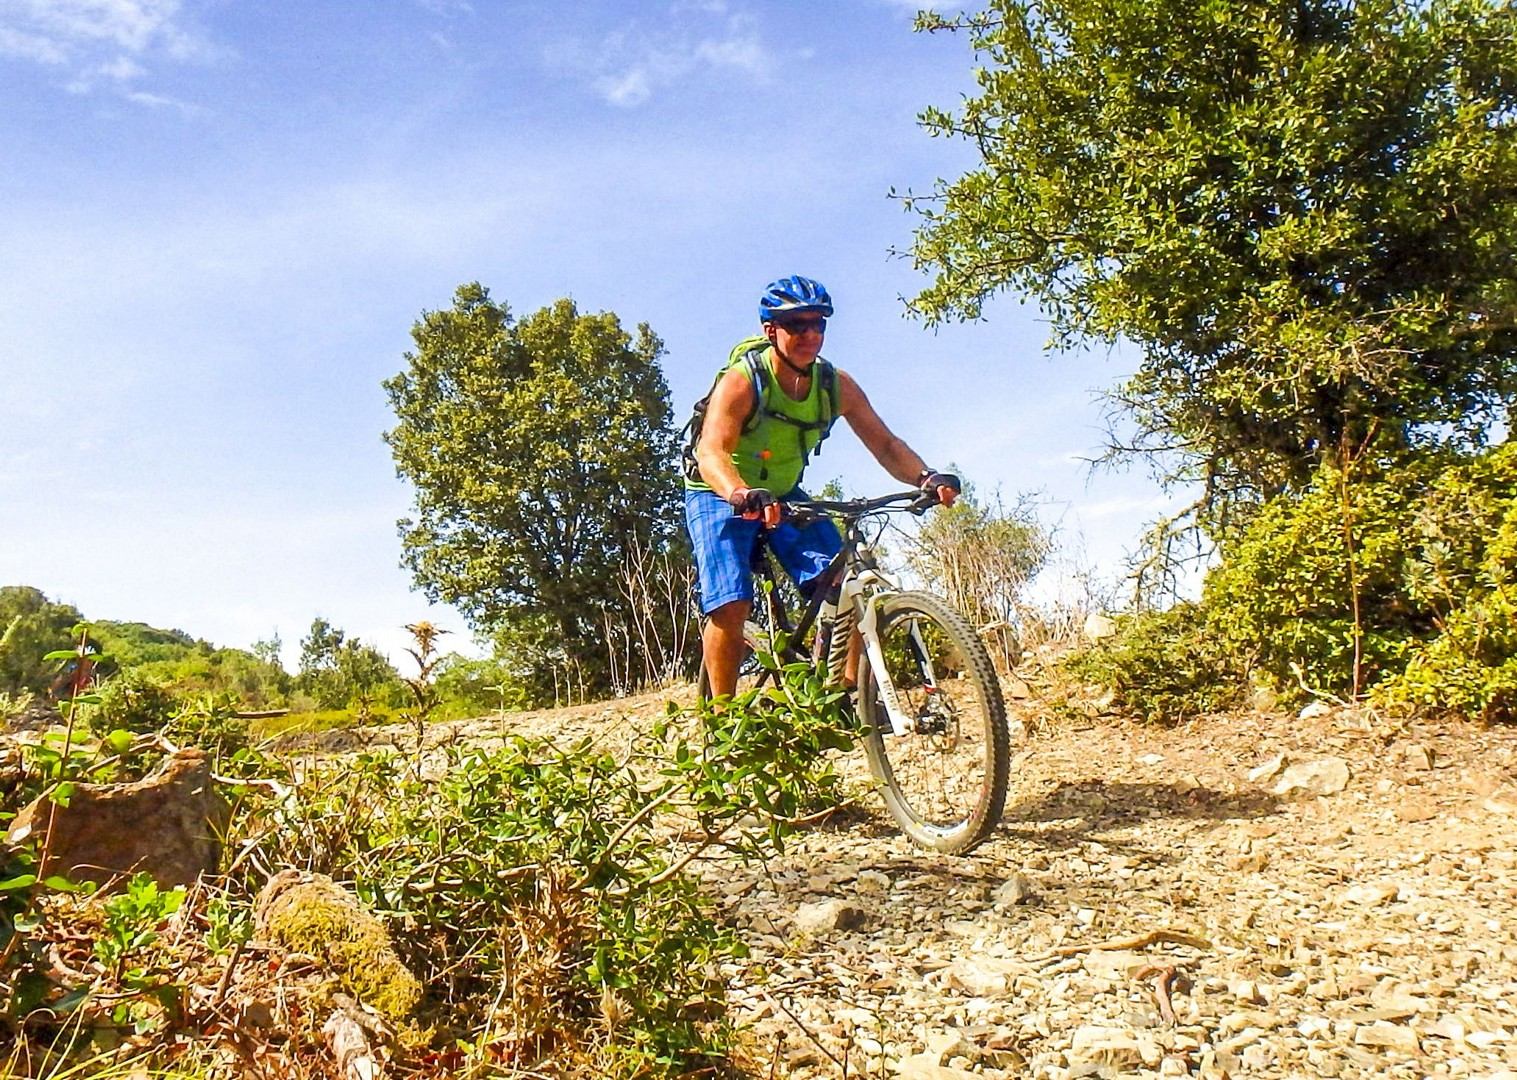 group-mountain-biking-italy-sardinia-experience-saddle-skedaddle.jpg - Sardinia - Coast to Coast - Mountain Biking